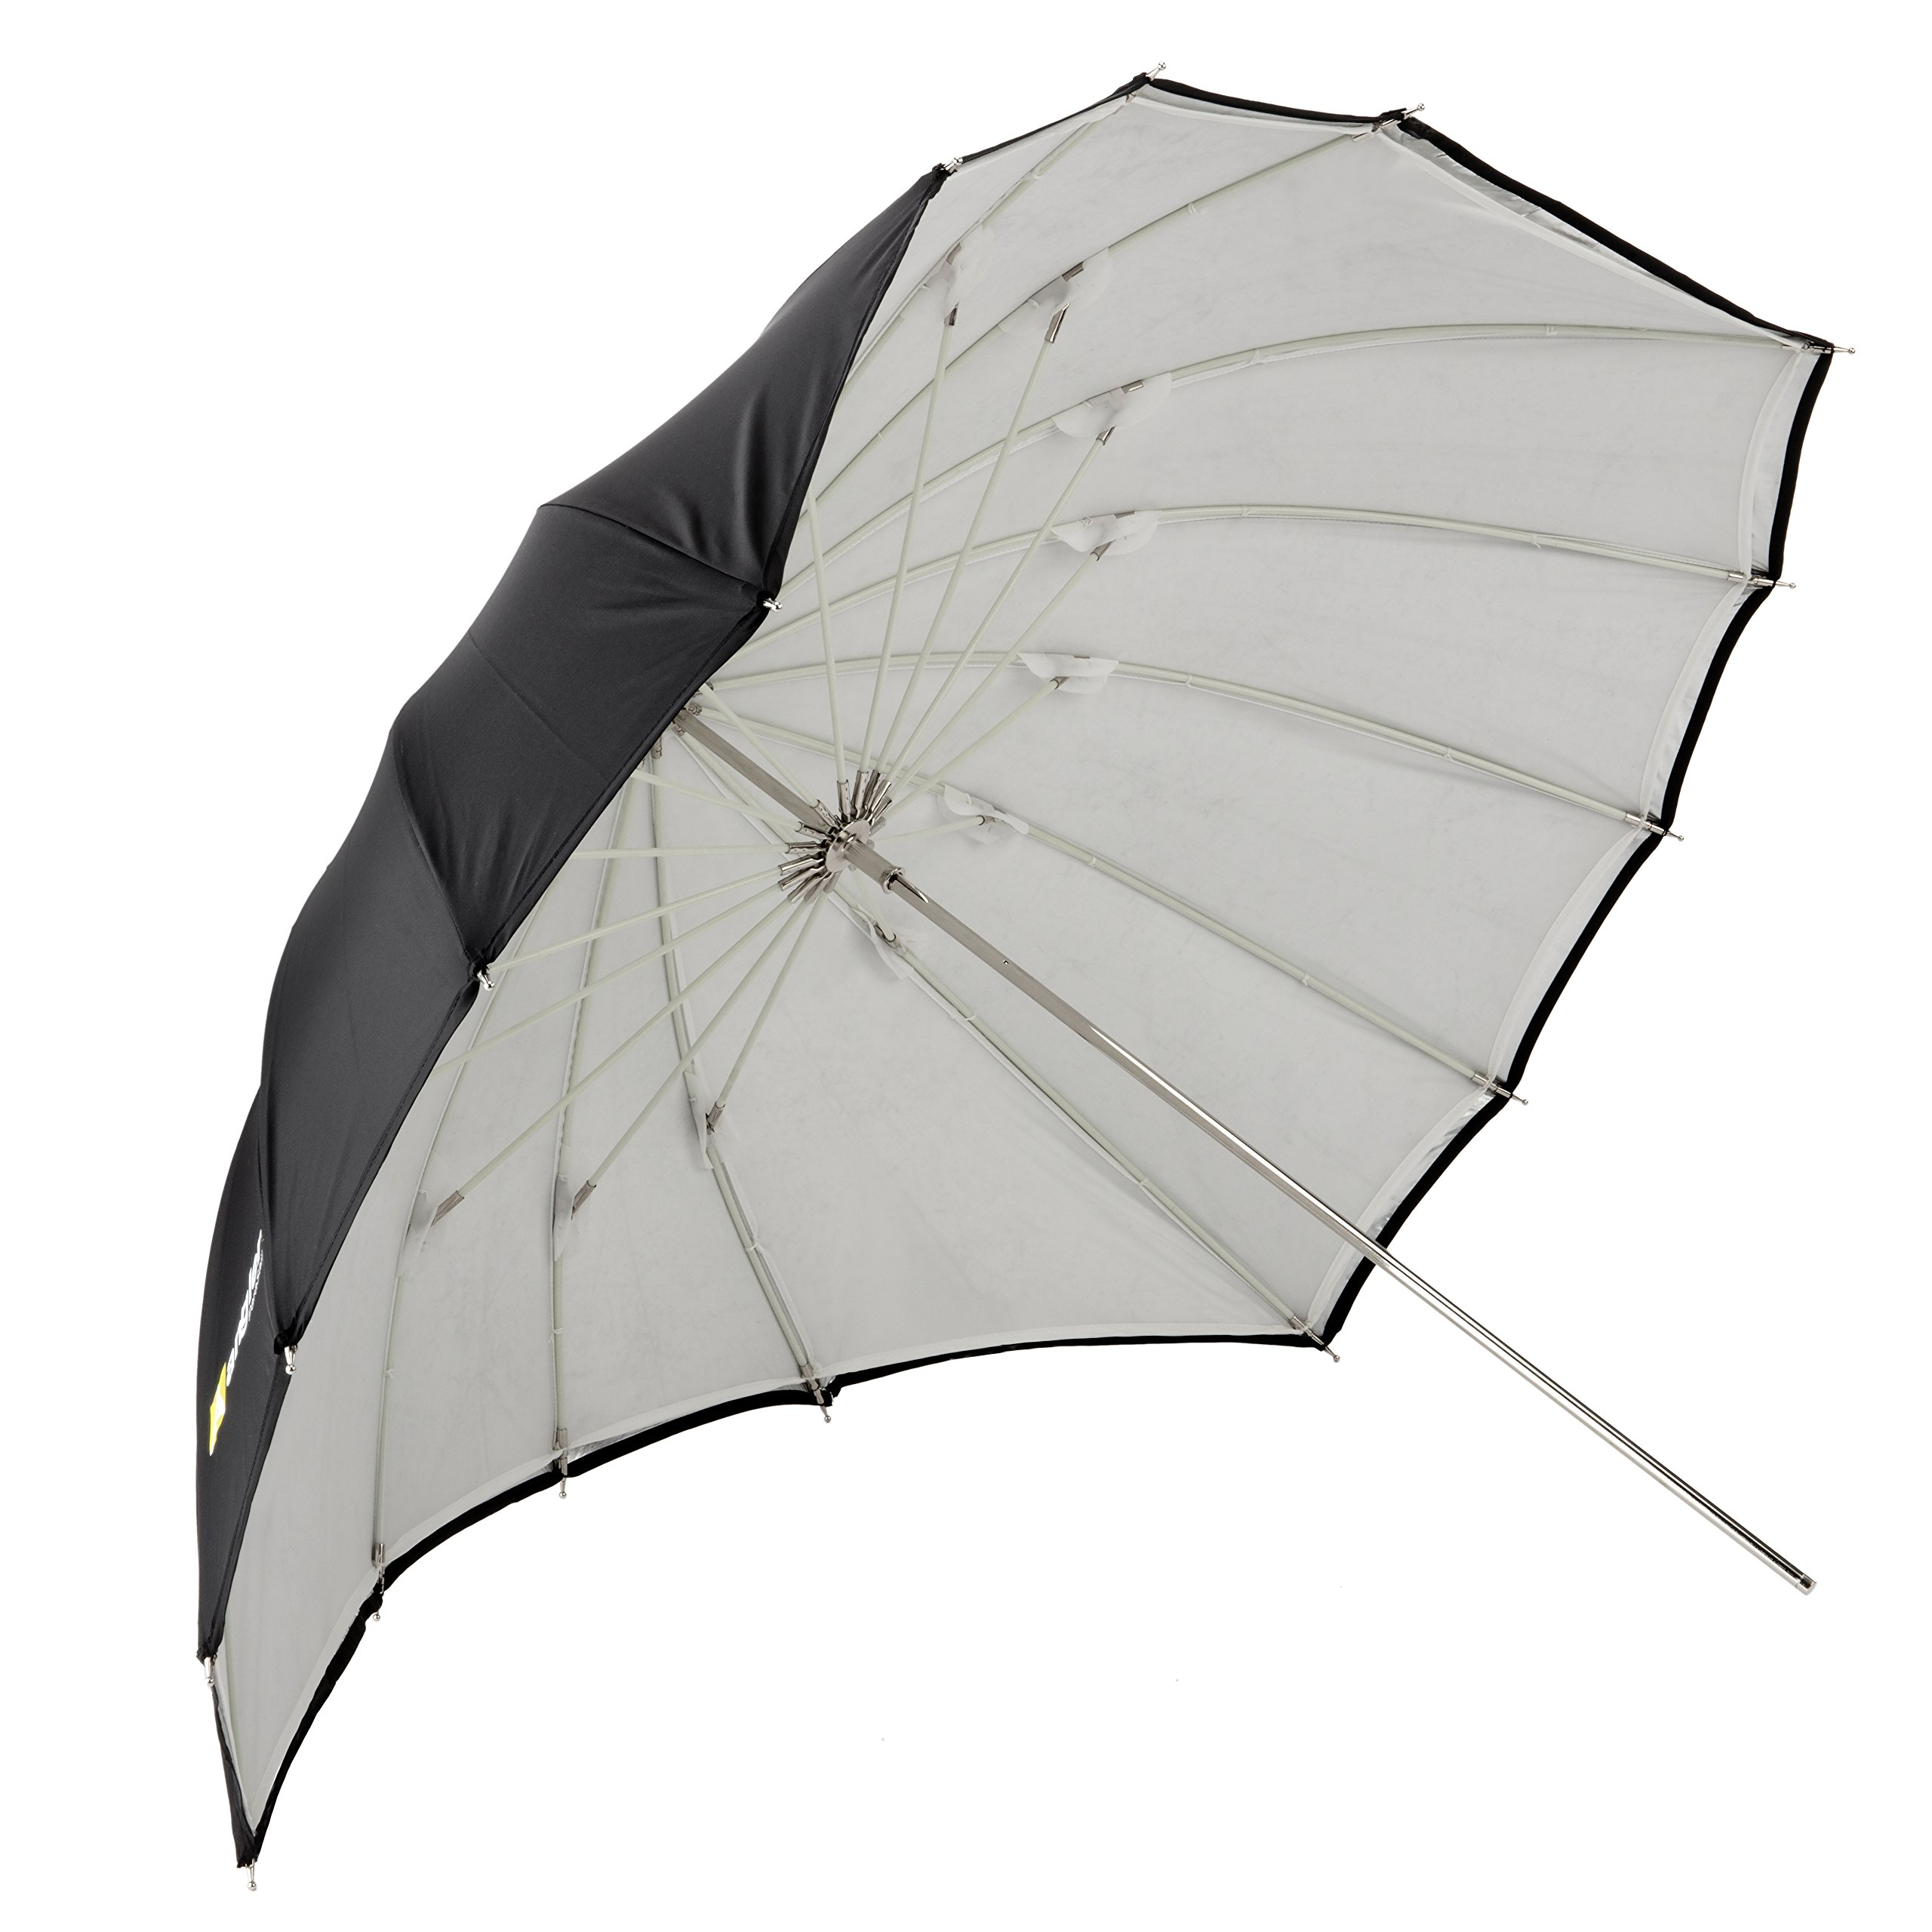 Angler ParaSail Parabolic Umbrella (White with Removable Black/Silver, 45'''')'' by Angler (Image #1)